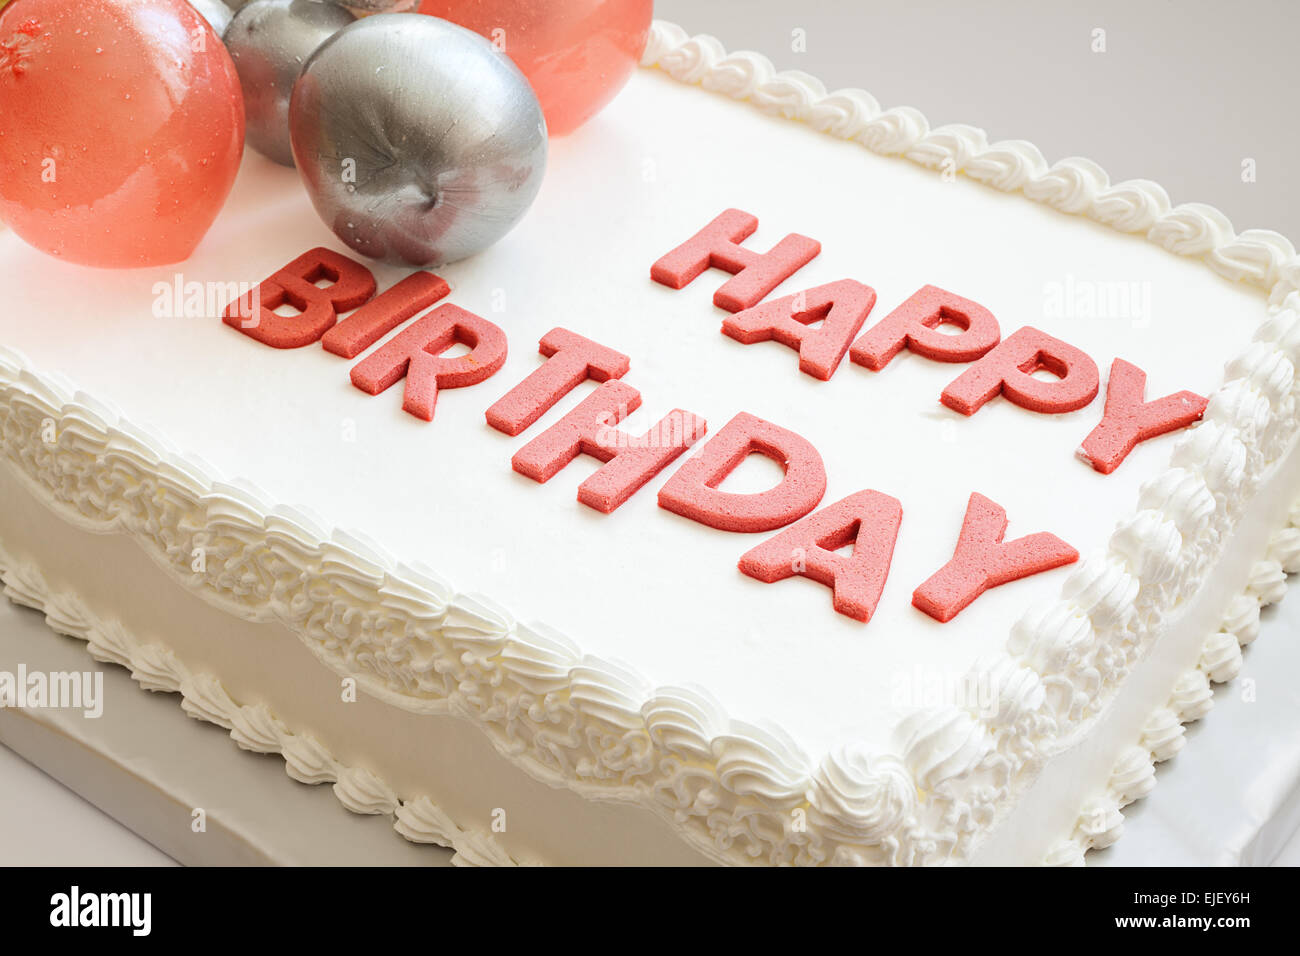 Details Of A Happy Birthday Cake On White Background